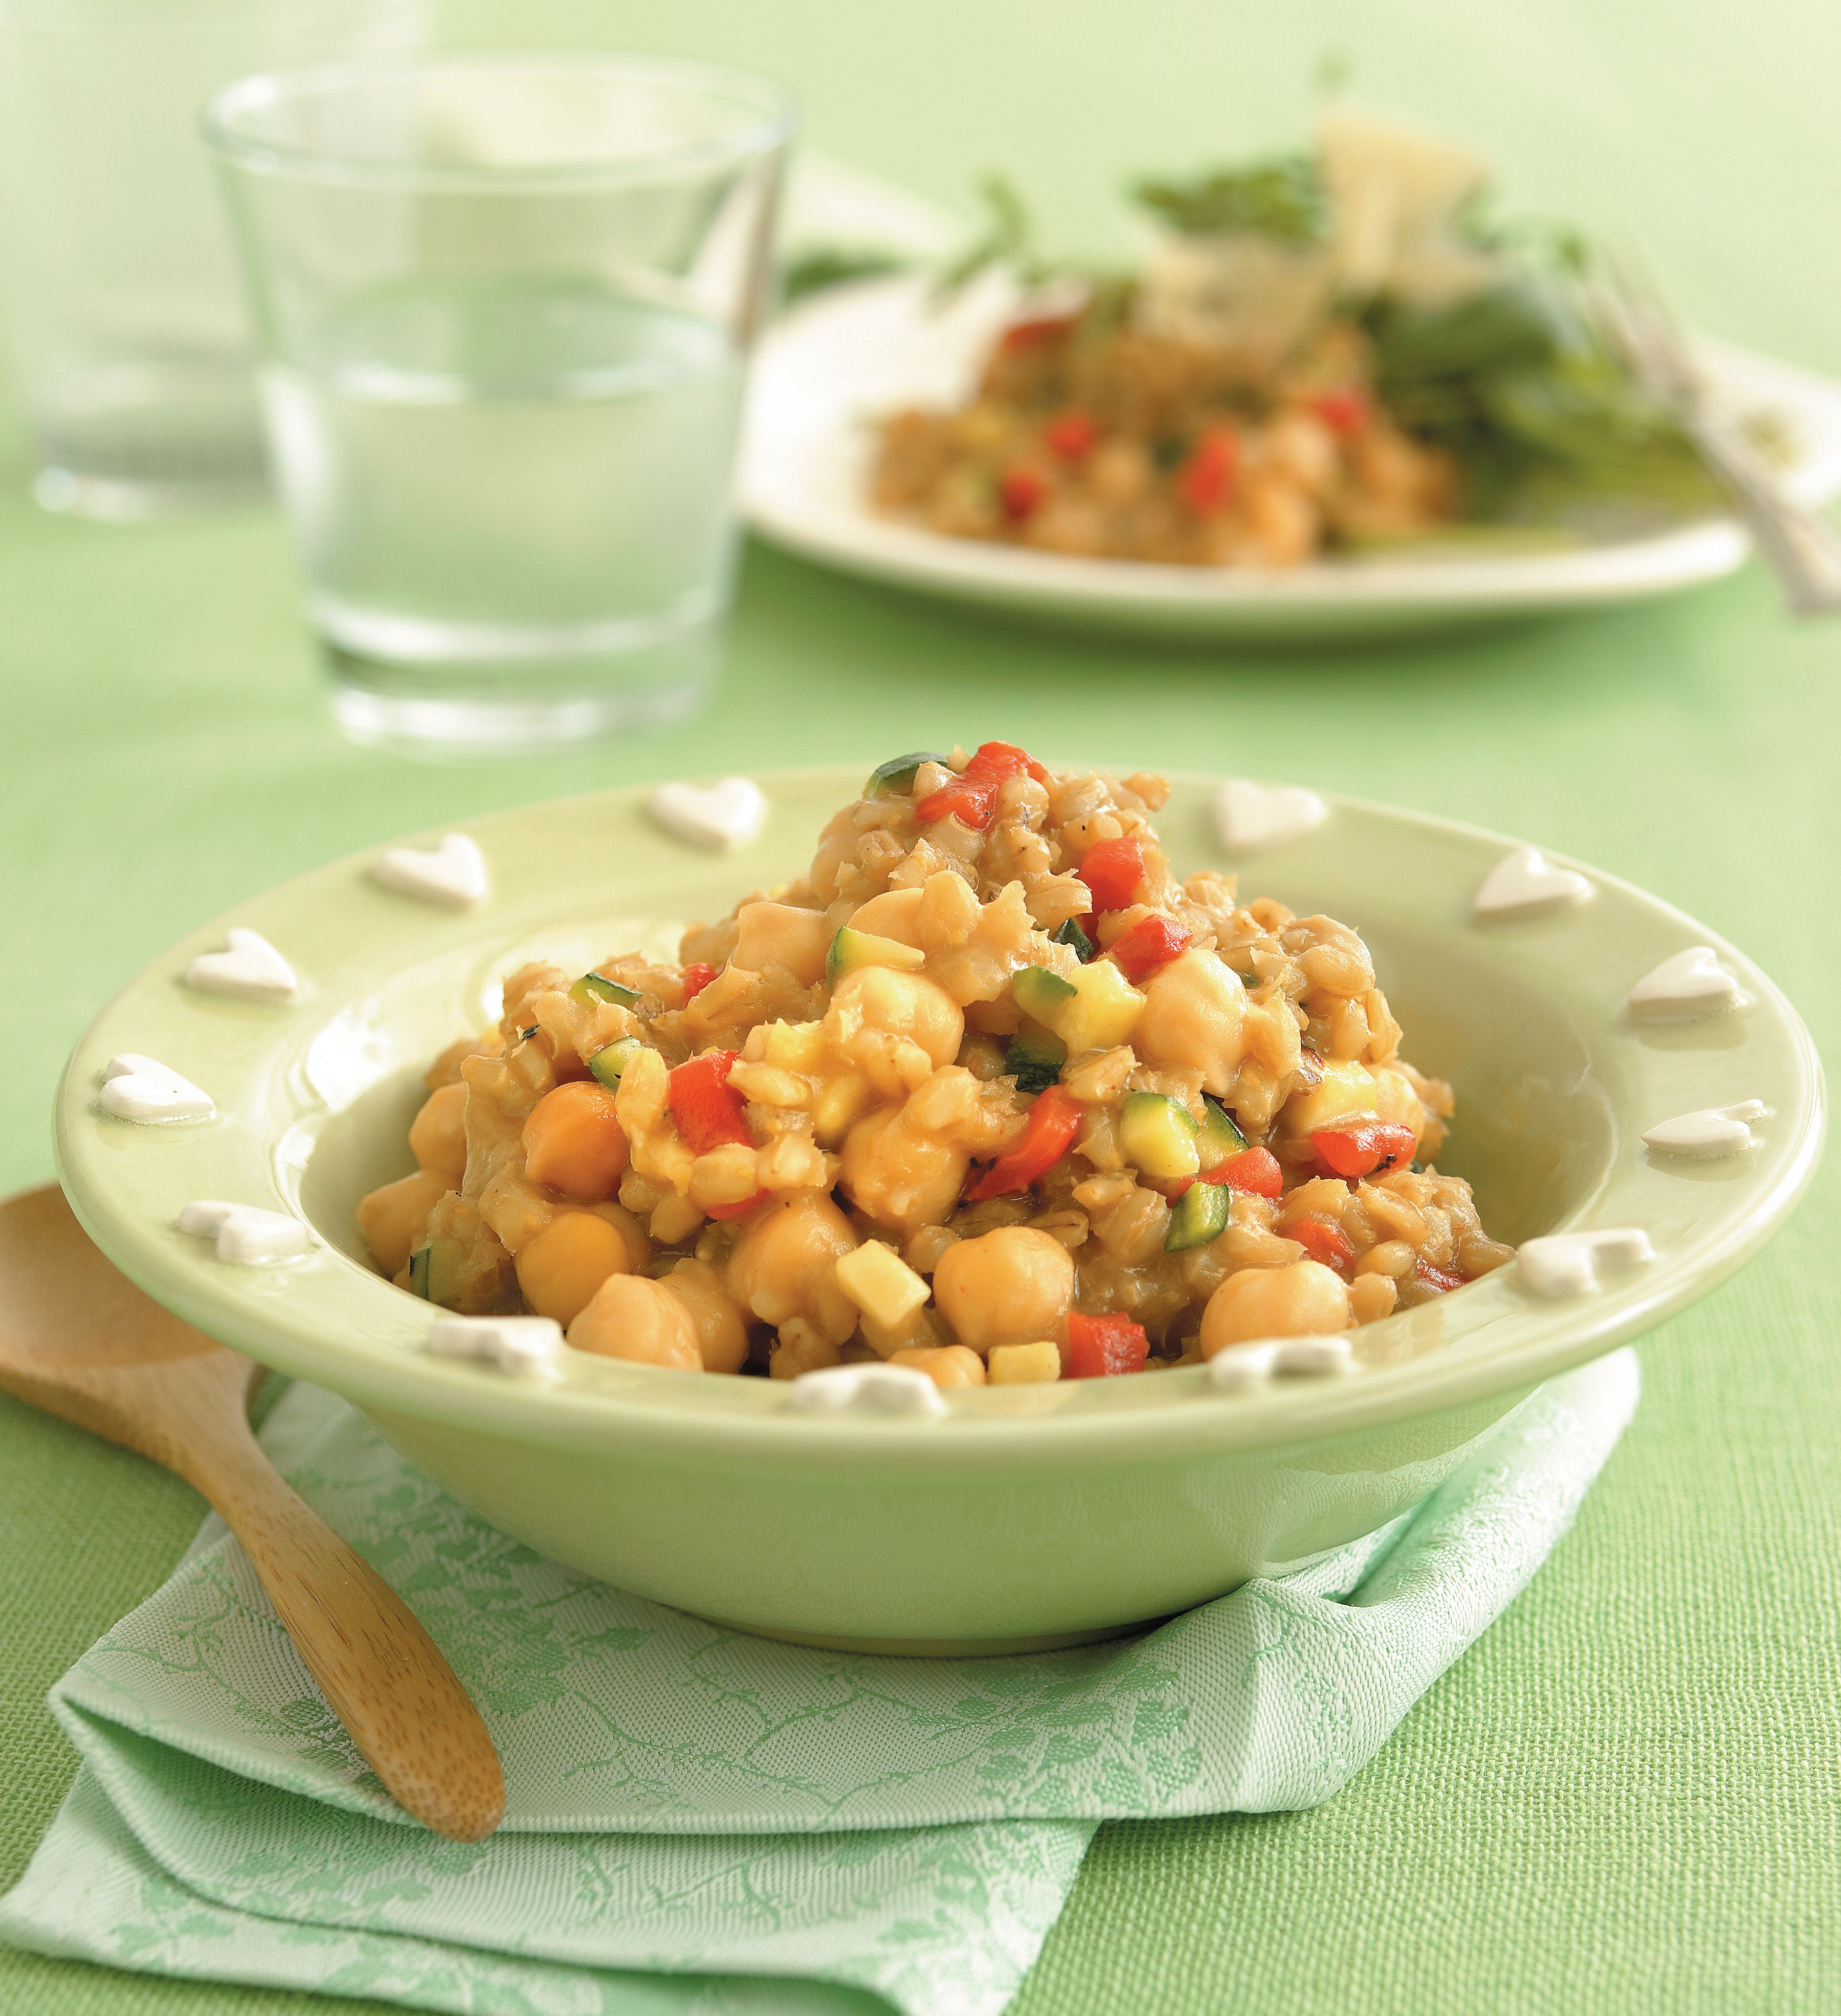 Barley risotto with chickpeas